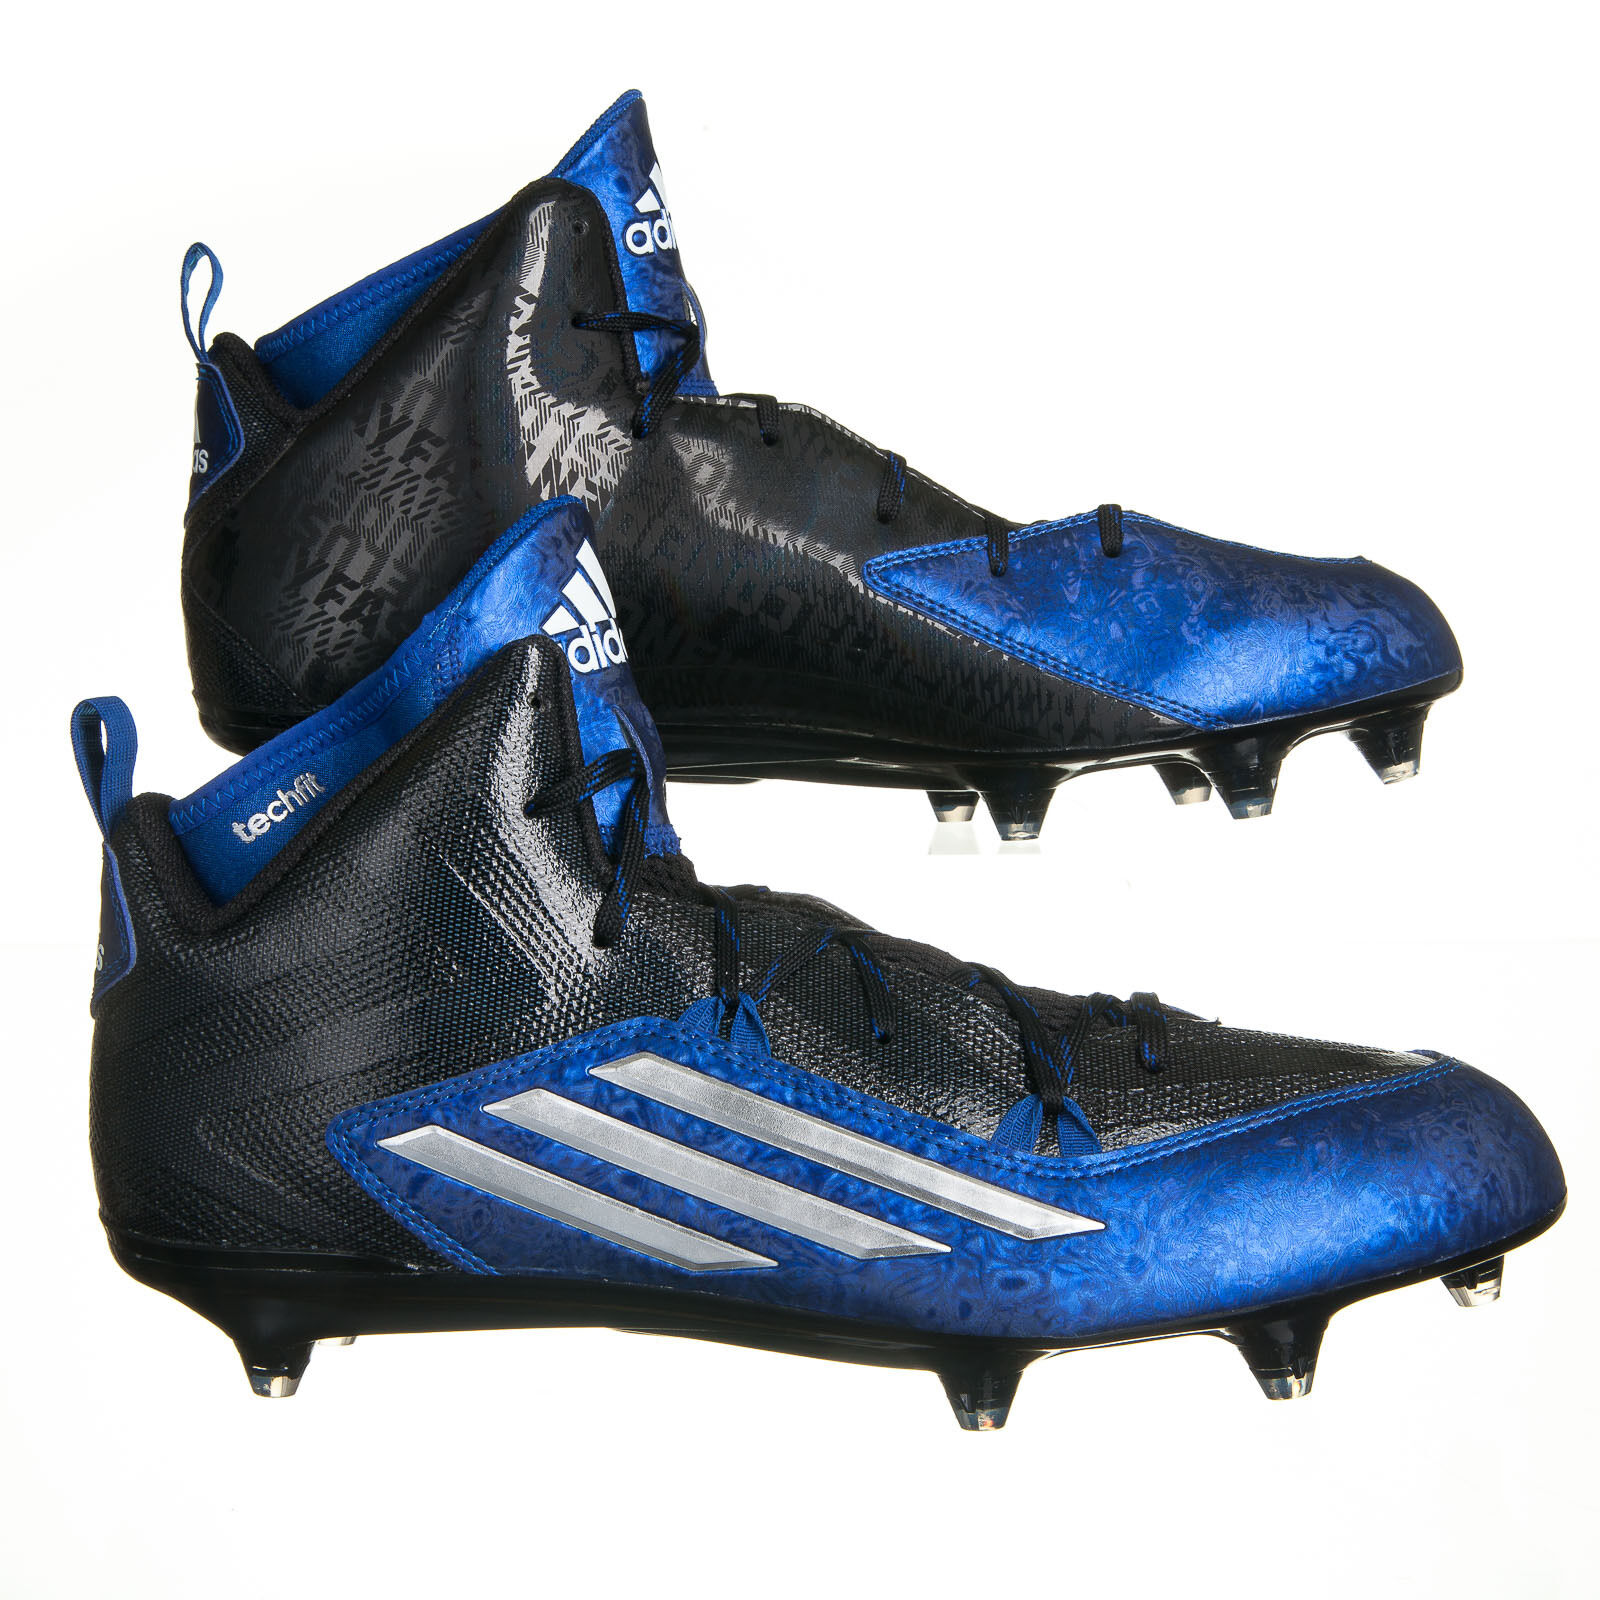 Adidas Crazyquick 2.0 Mid Blue Black Football Cleats - Mens SIze 13.5 Price reduction best-selling model of the brand